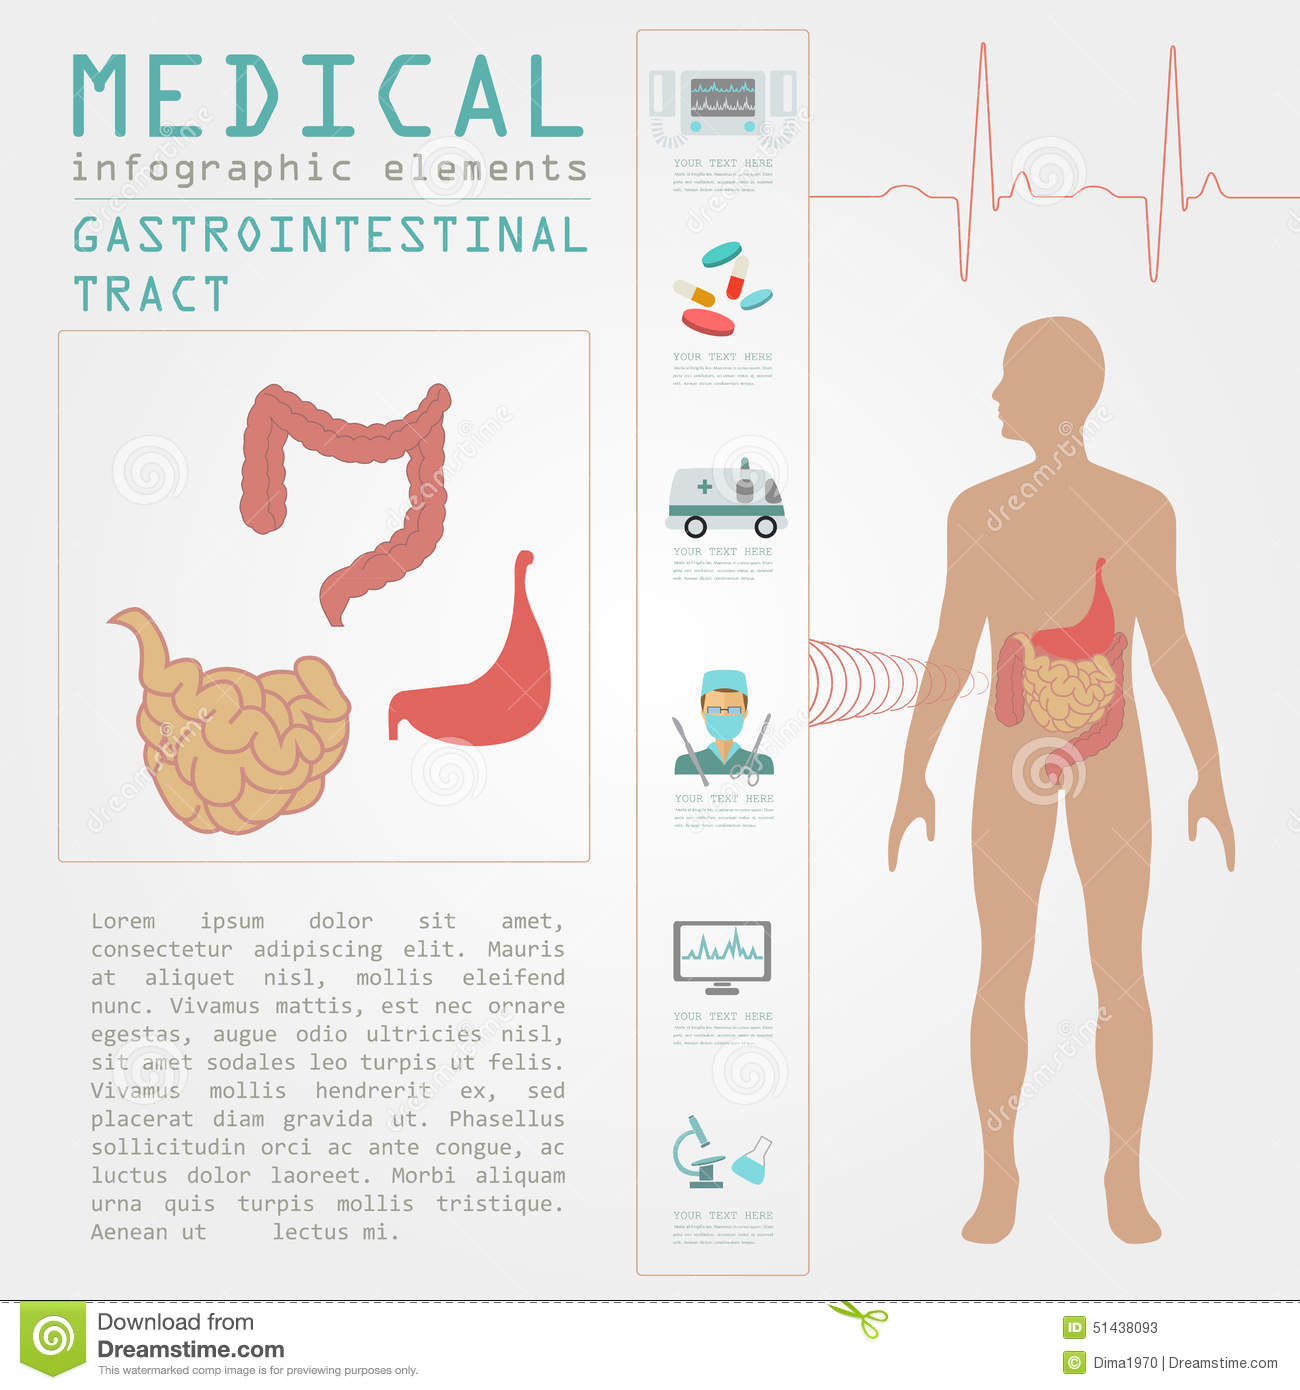 Medical and healthcare infographic, gastrointestinal tract infographic